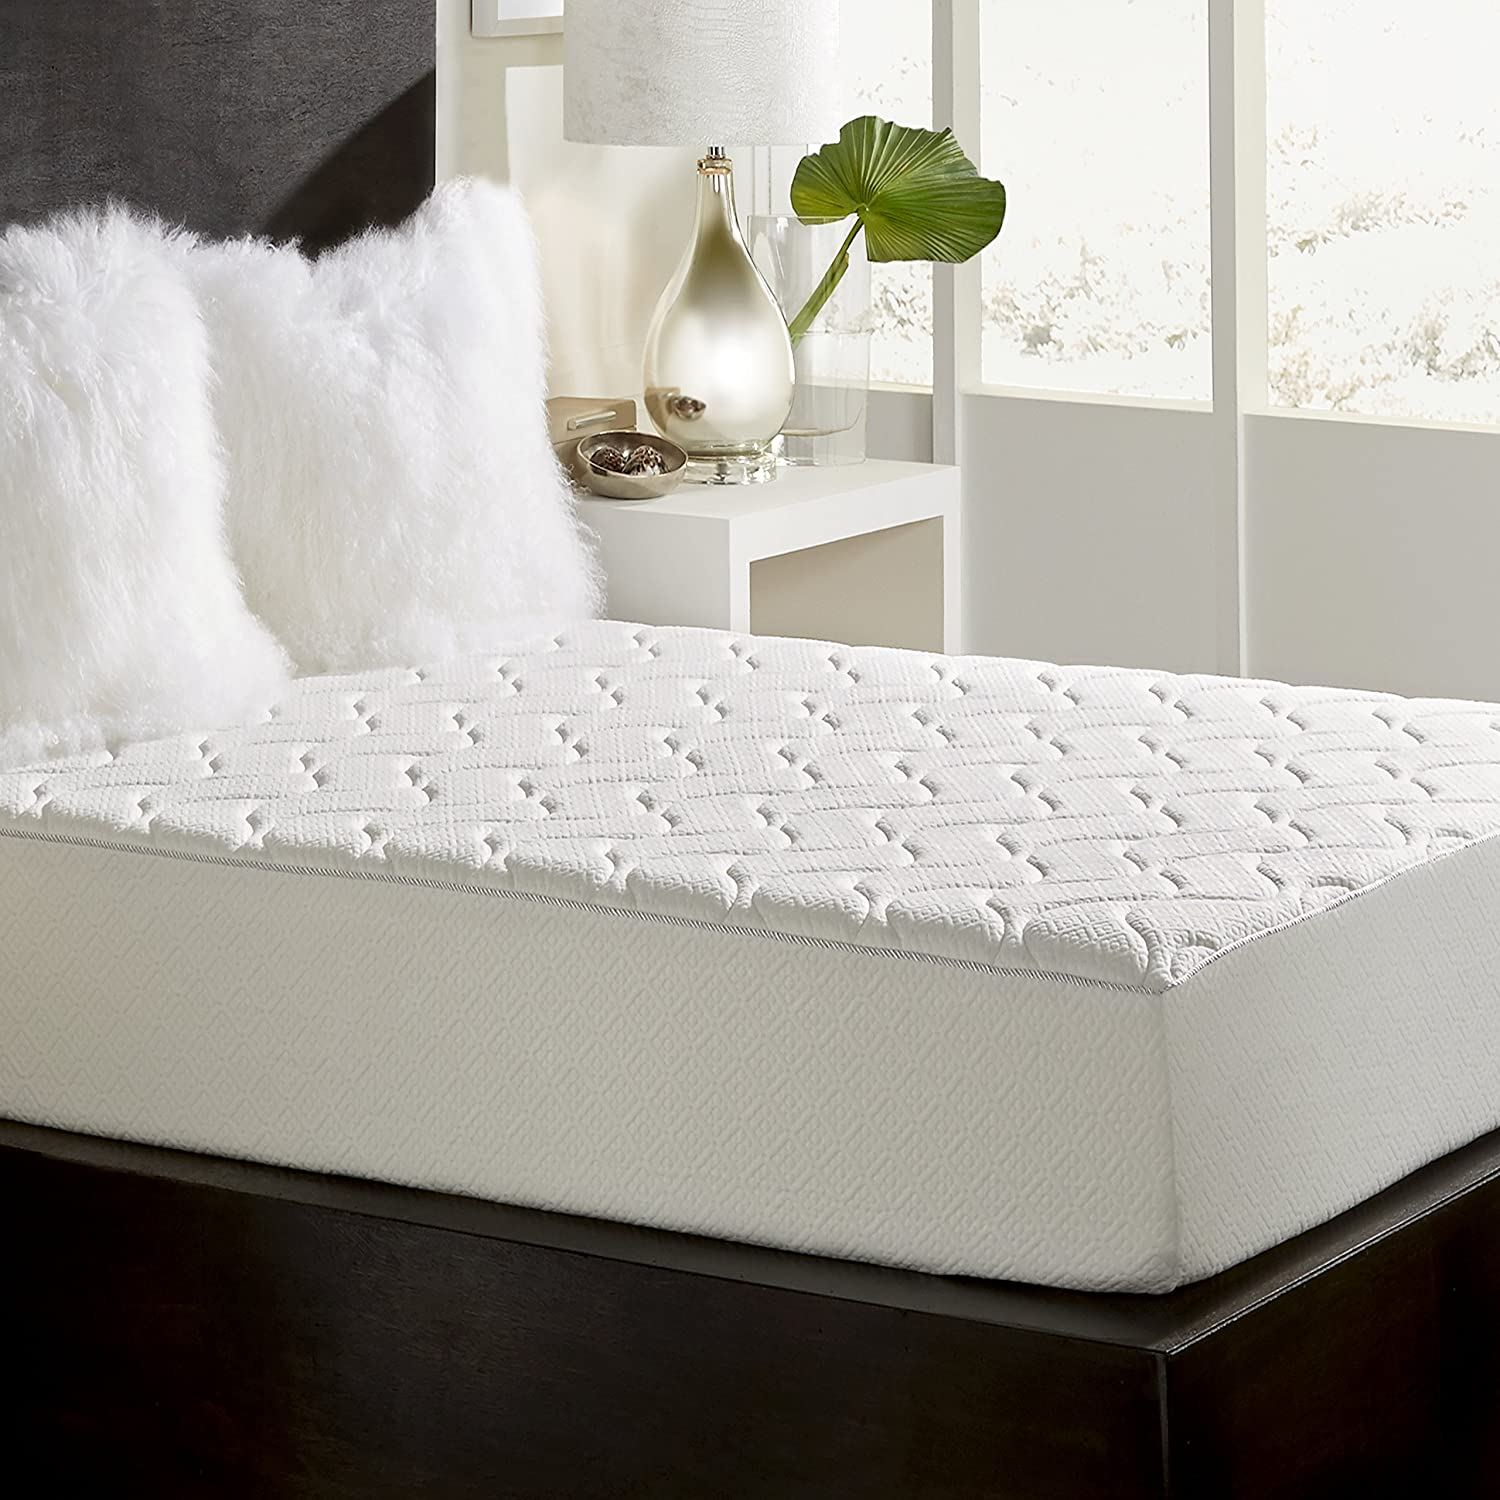 Rio Home Fashions 10-Inch Top Quilted Memory Foam Mattress King Reviews